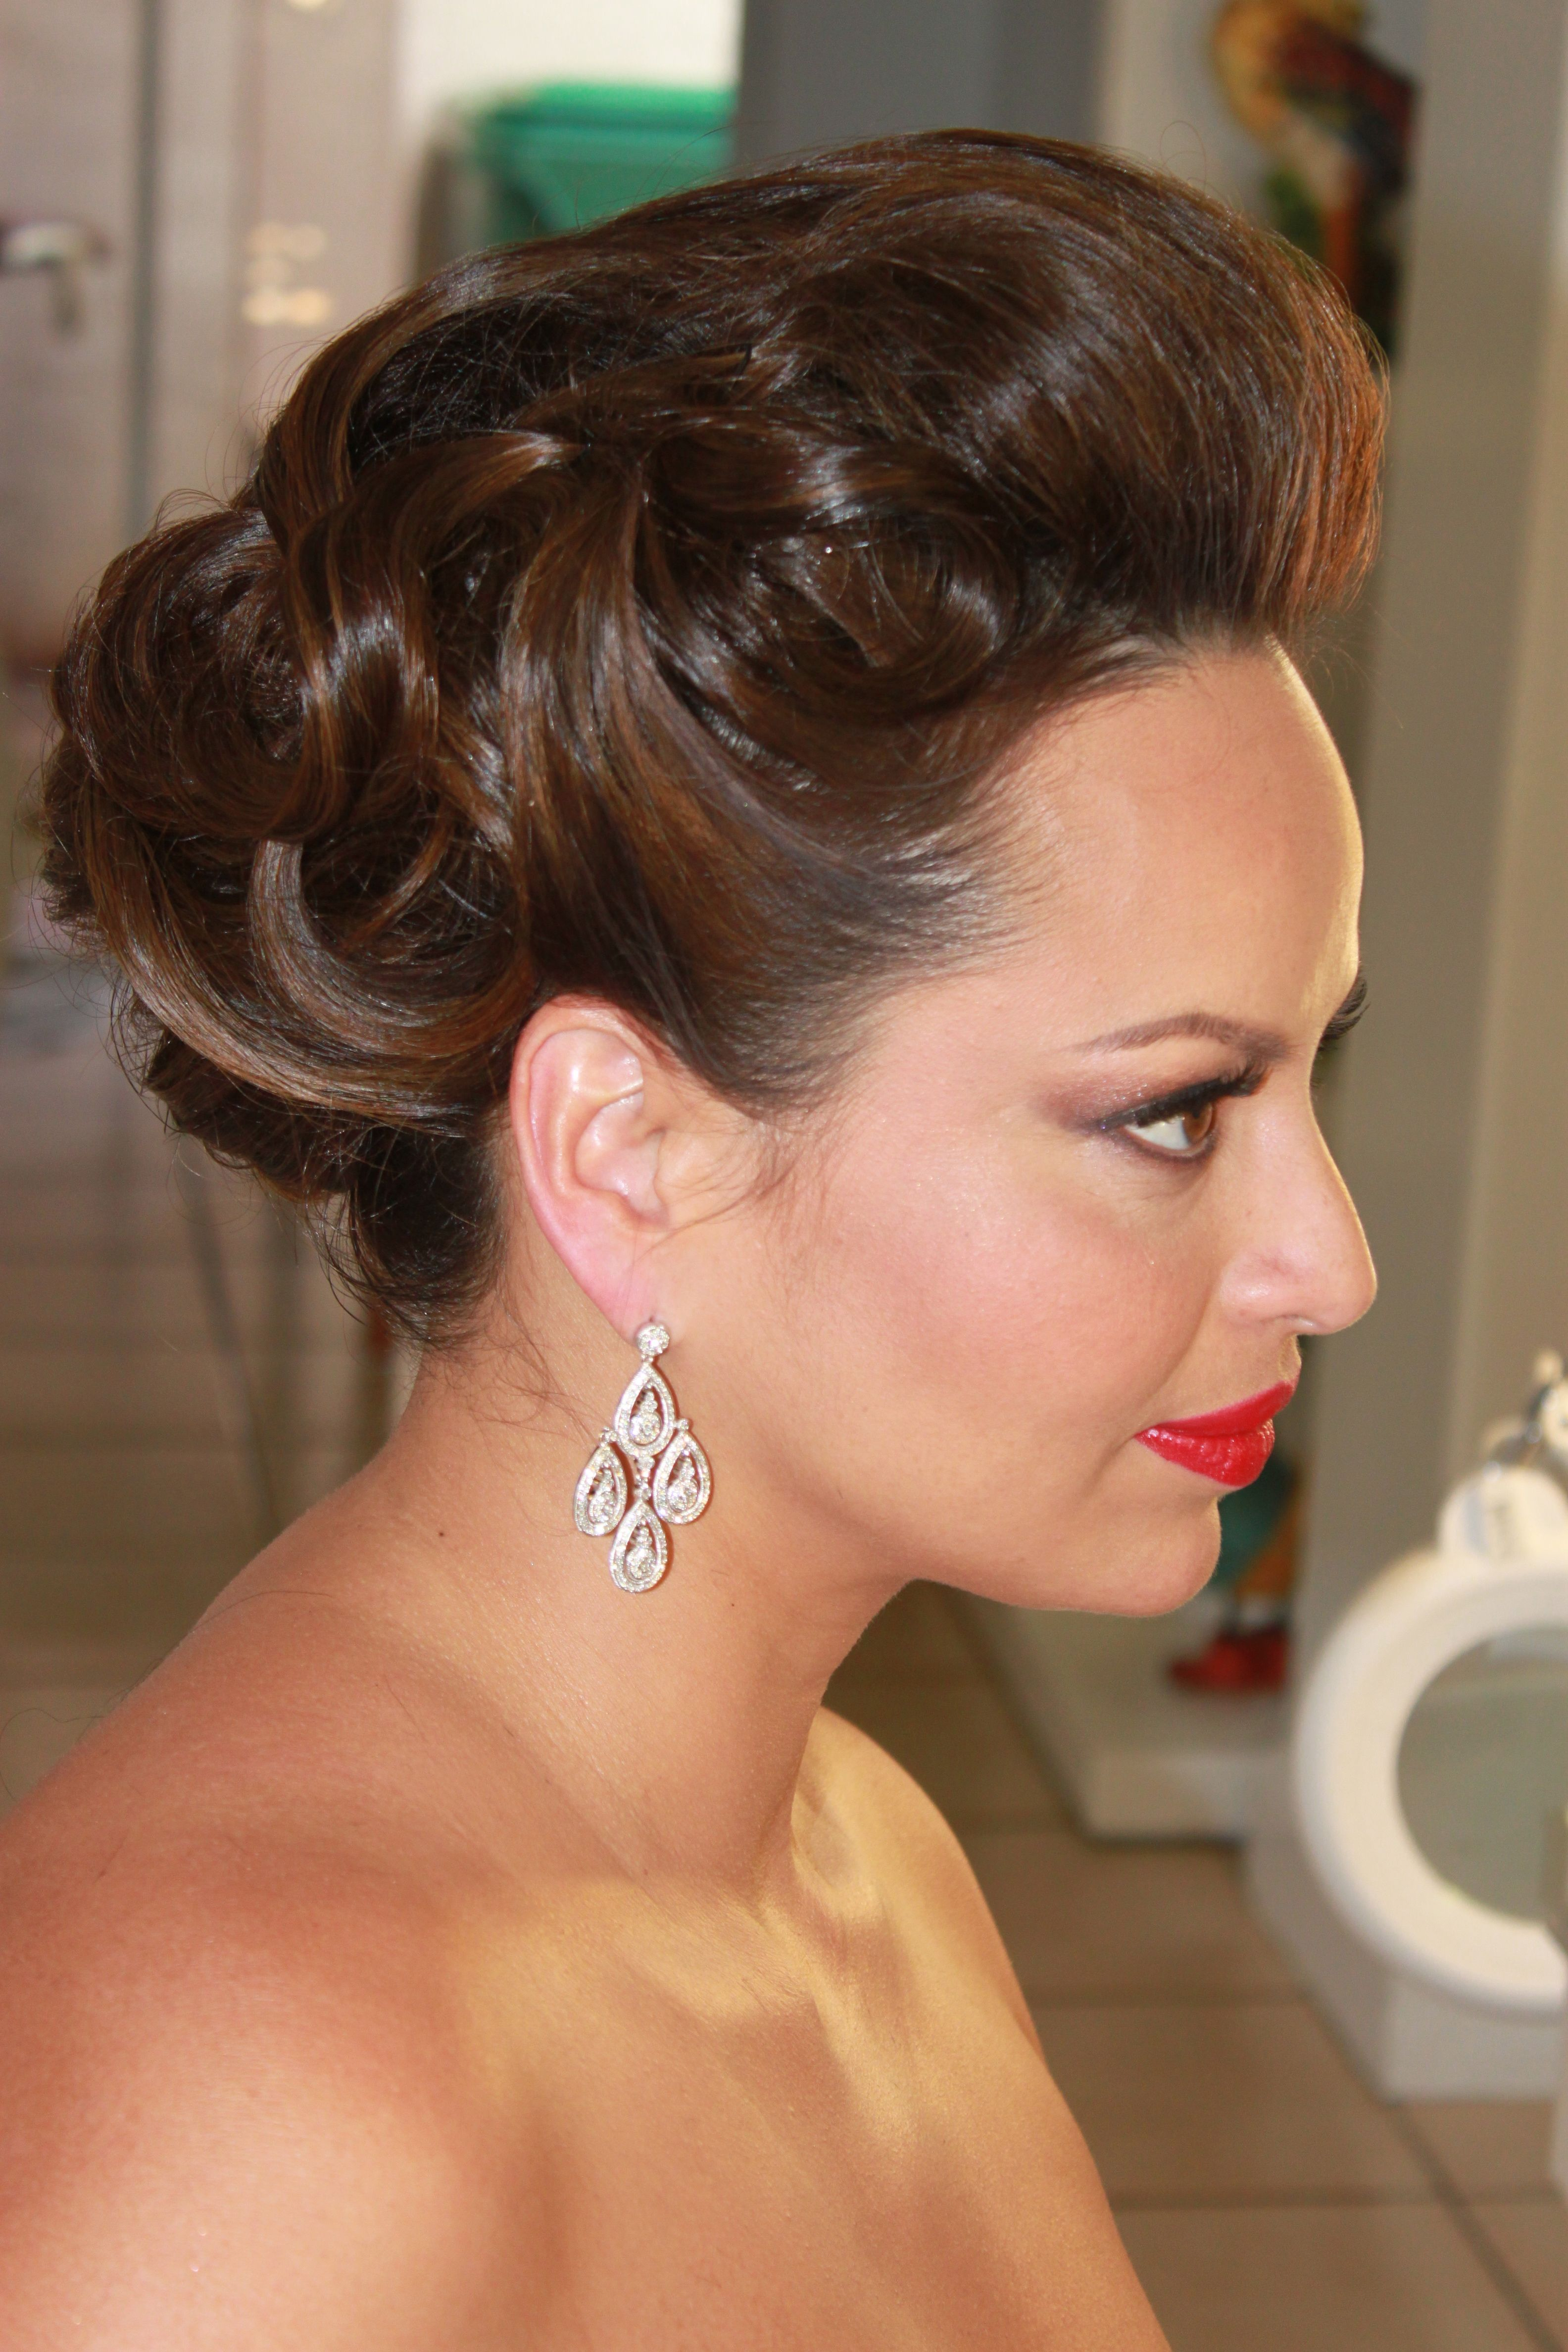 Old Hollywood Glam #bride #beauty #bestinmiami #makeup #myispiration #glam #glow #redlips #guruofbrides #hair #retro #diva #moviestar by http://www.gloriapelo.com